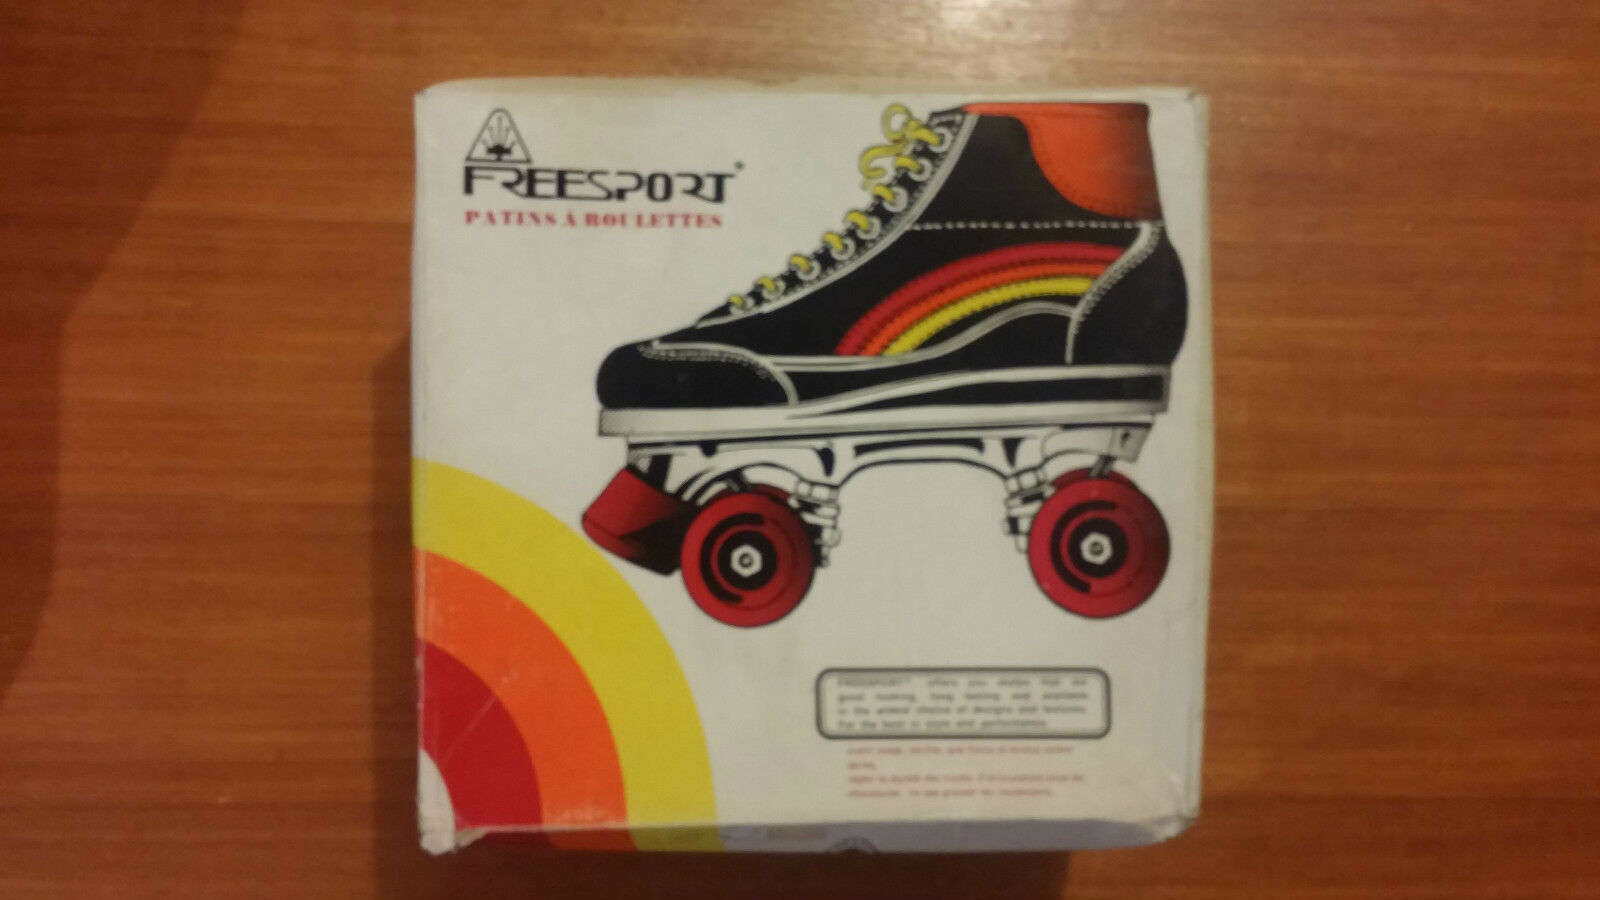 Patines Vintage Talla 32 Freesport Nuevo Angerichtet